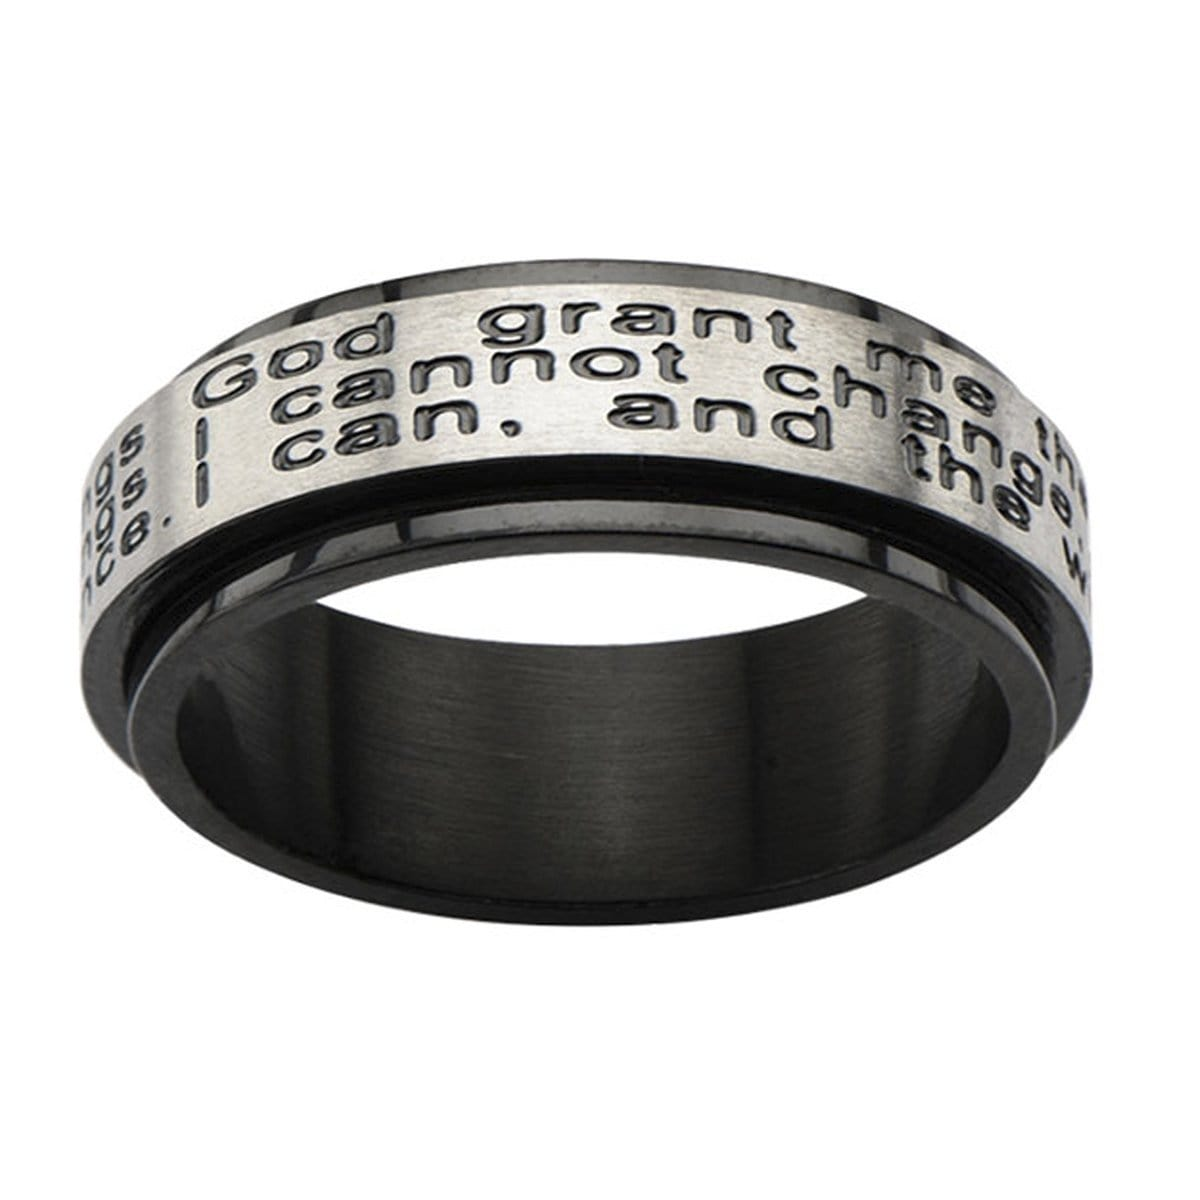 Black & Silver Stainless Steel Serenity Prayer Spinner Ring